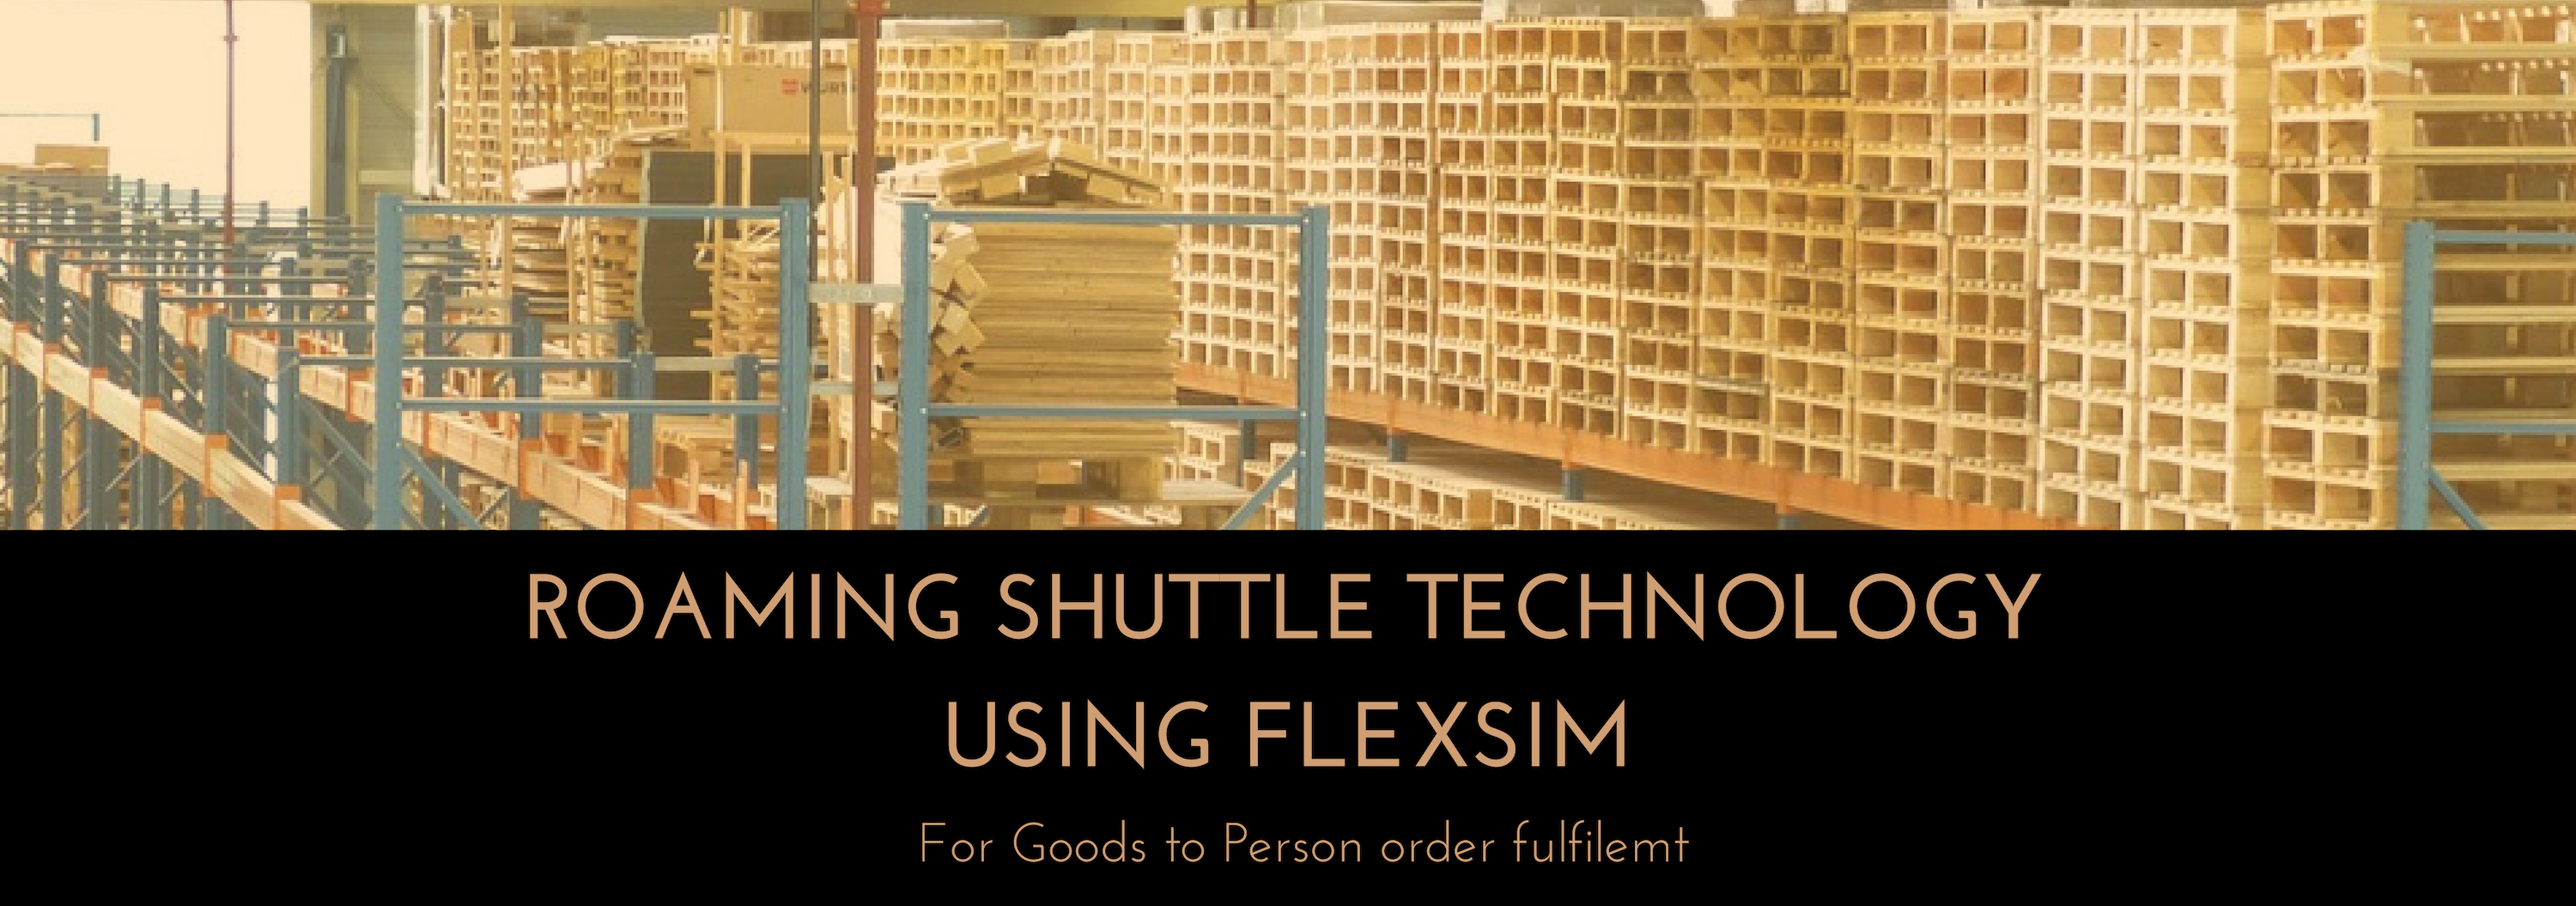 Roaming shuttle technology using FlexSim